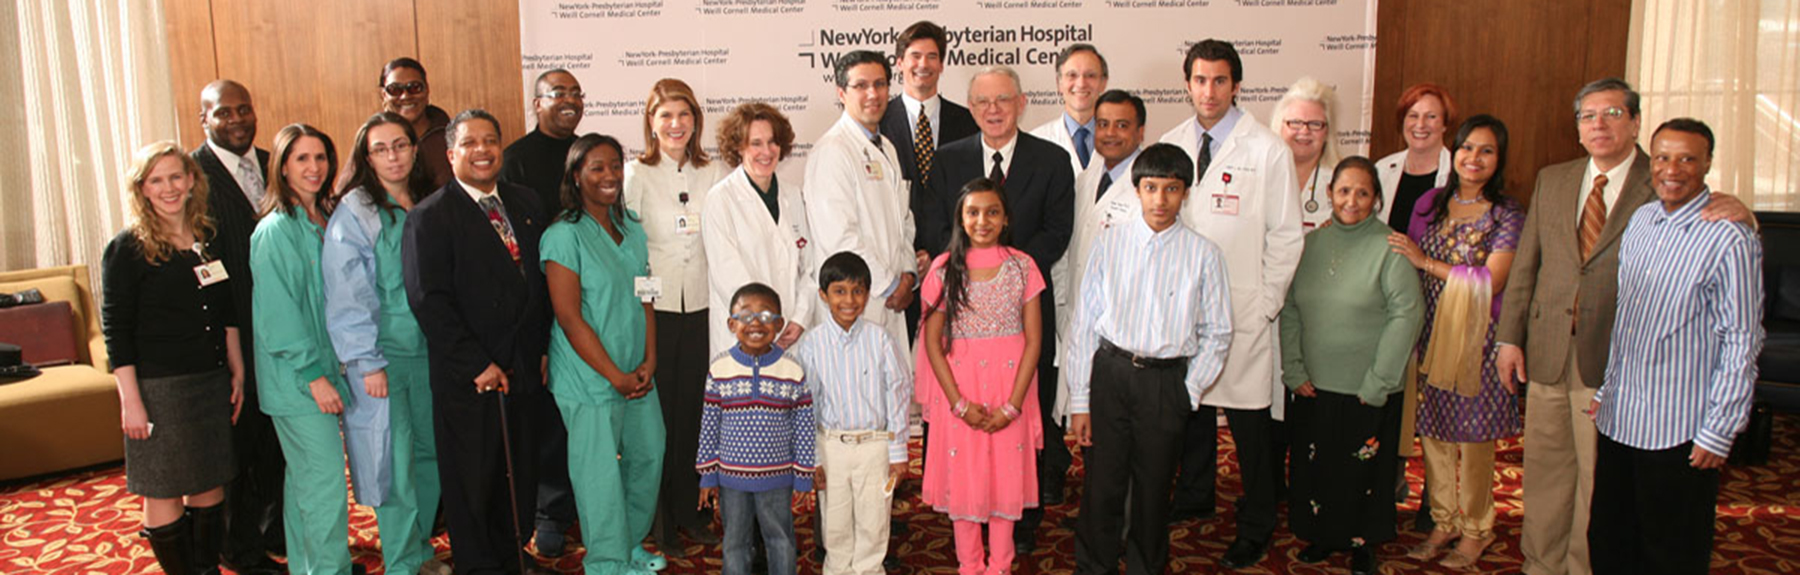 Group photo of the patients involved in an early donor exchange